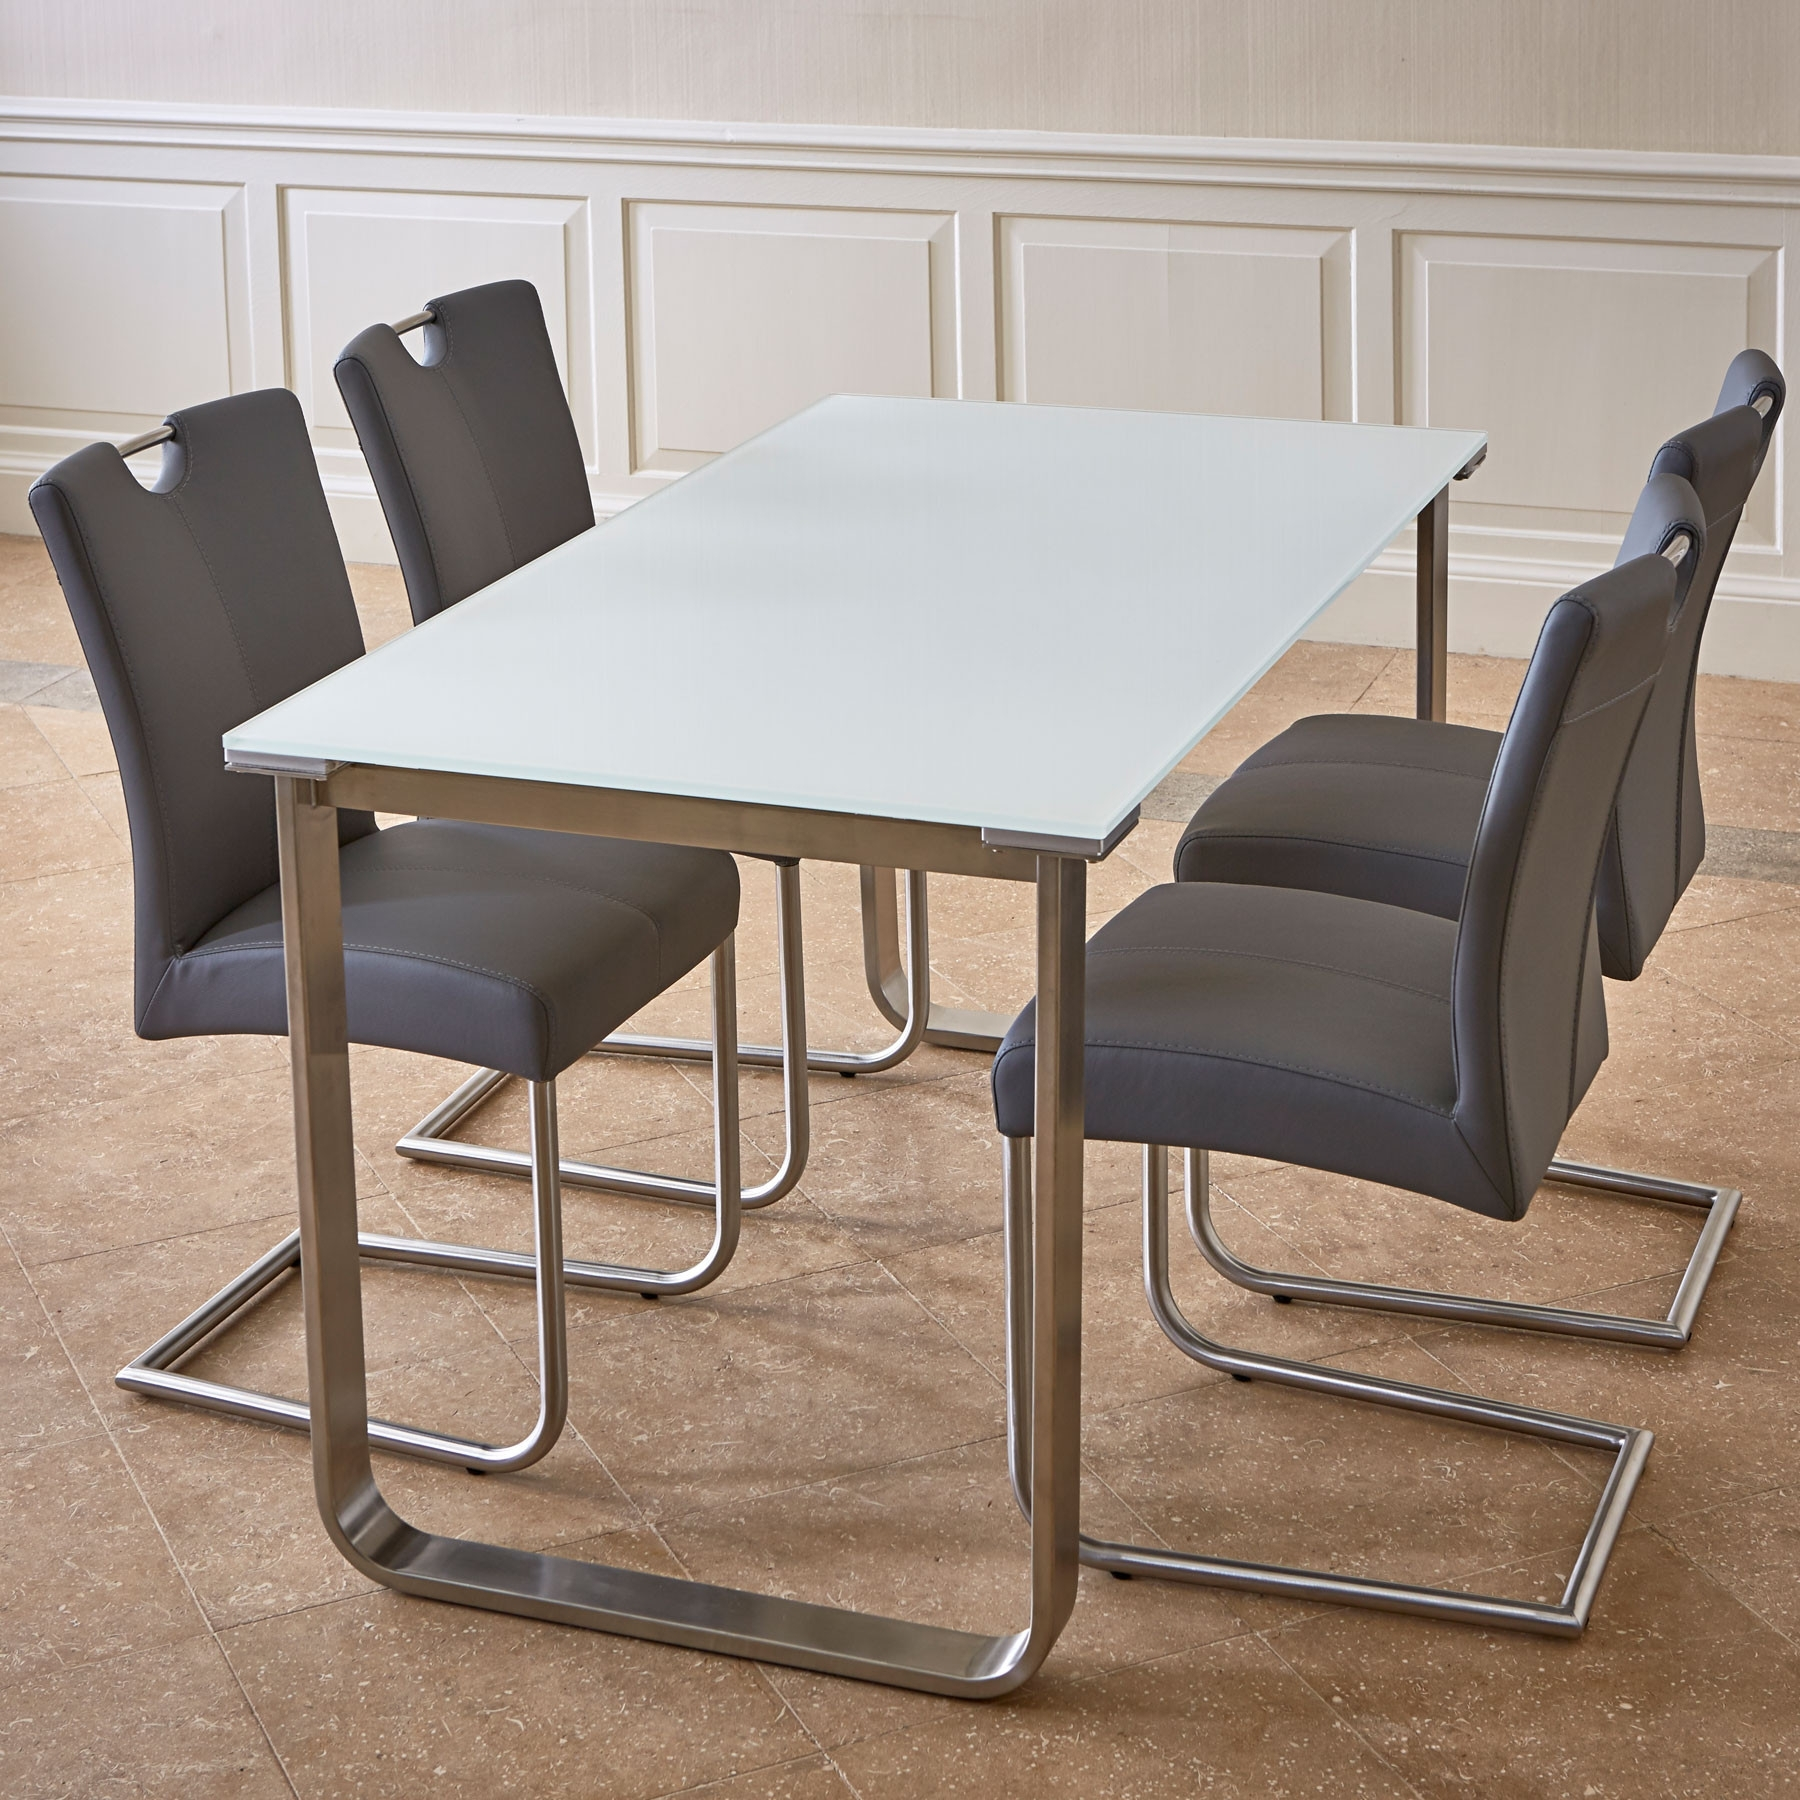 Best And Newest Glass Dining Tables White Chairs Within Pluto White Glass Dining Table & 4 Chairs (Gallery 19 of 25)